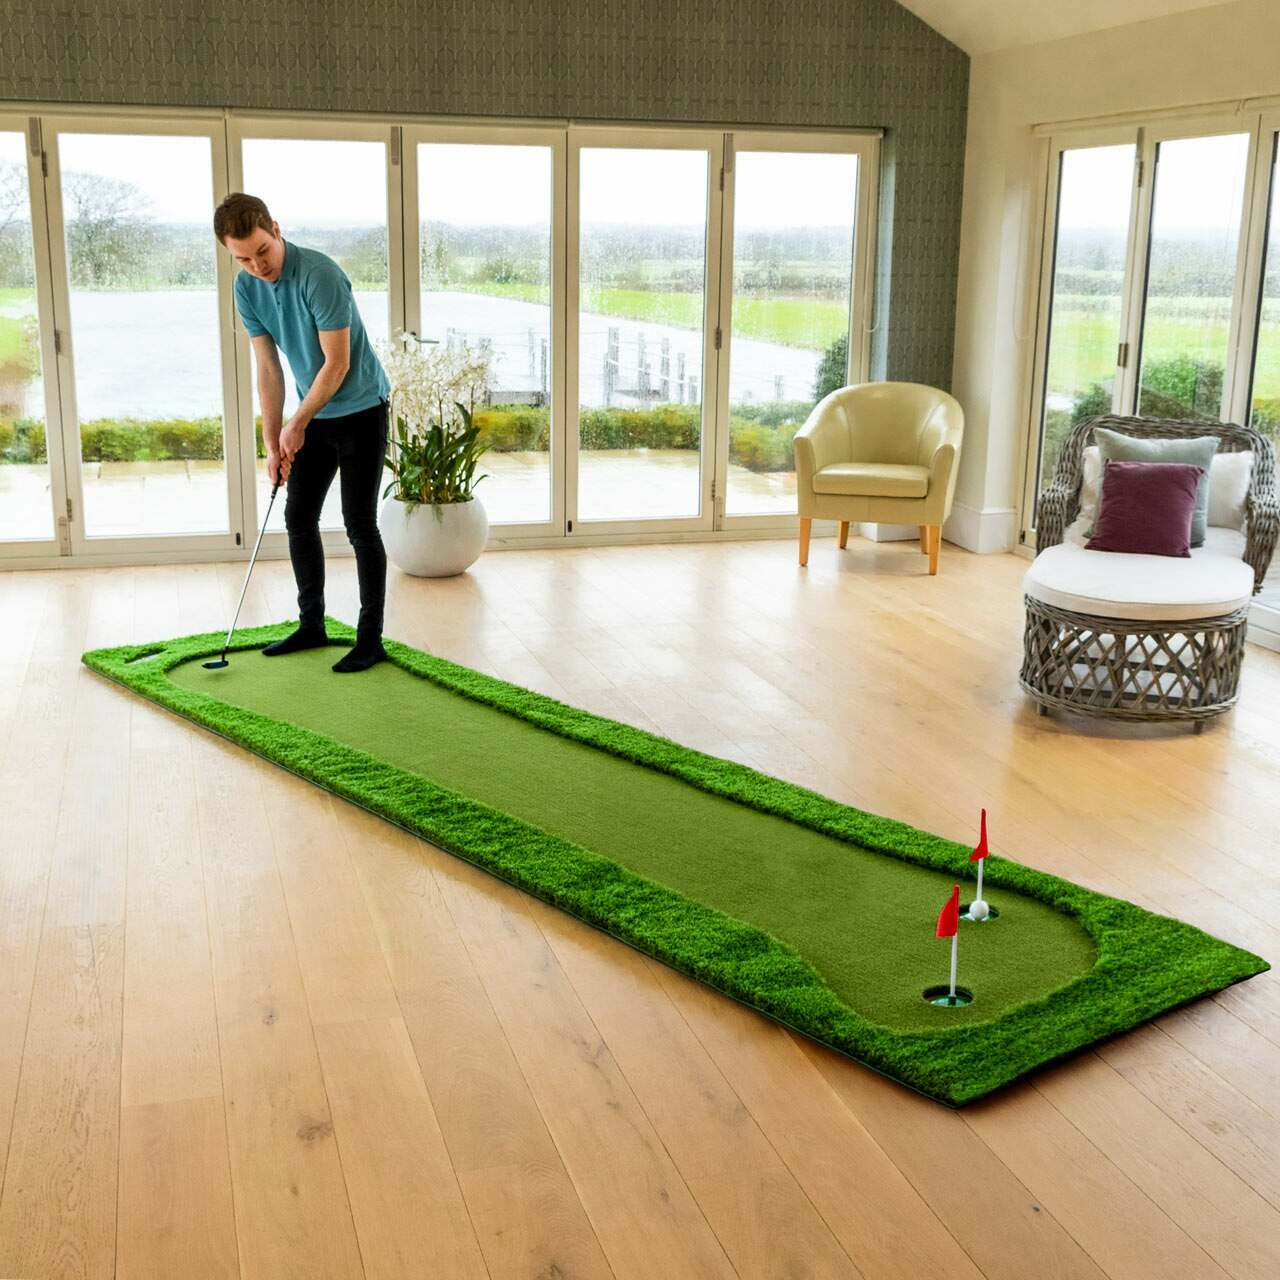 FORB PROFESSIONELE GOLF PUTTING MAT